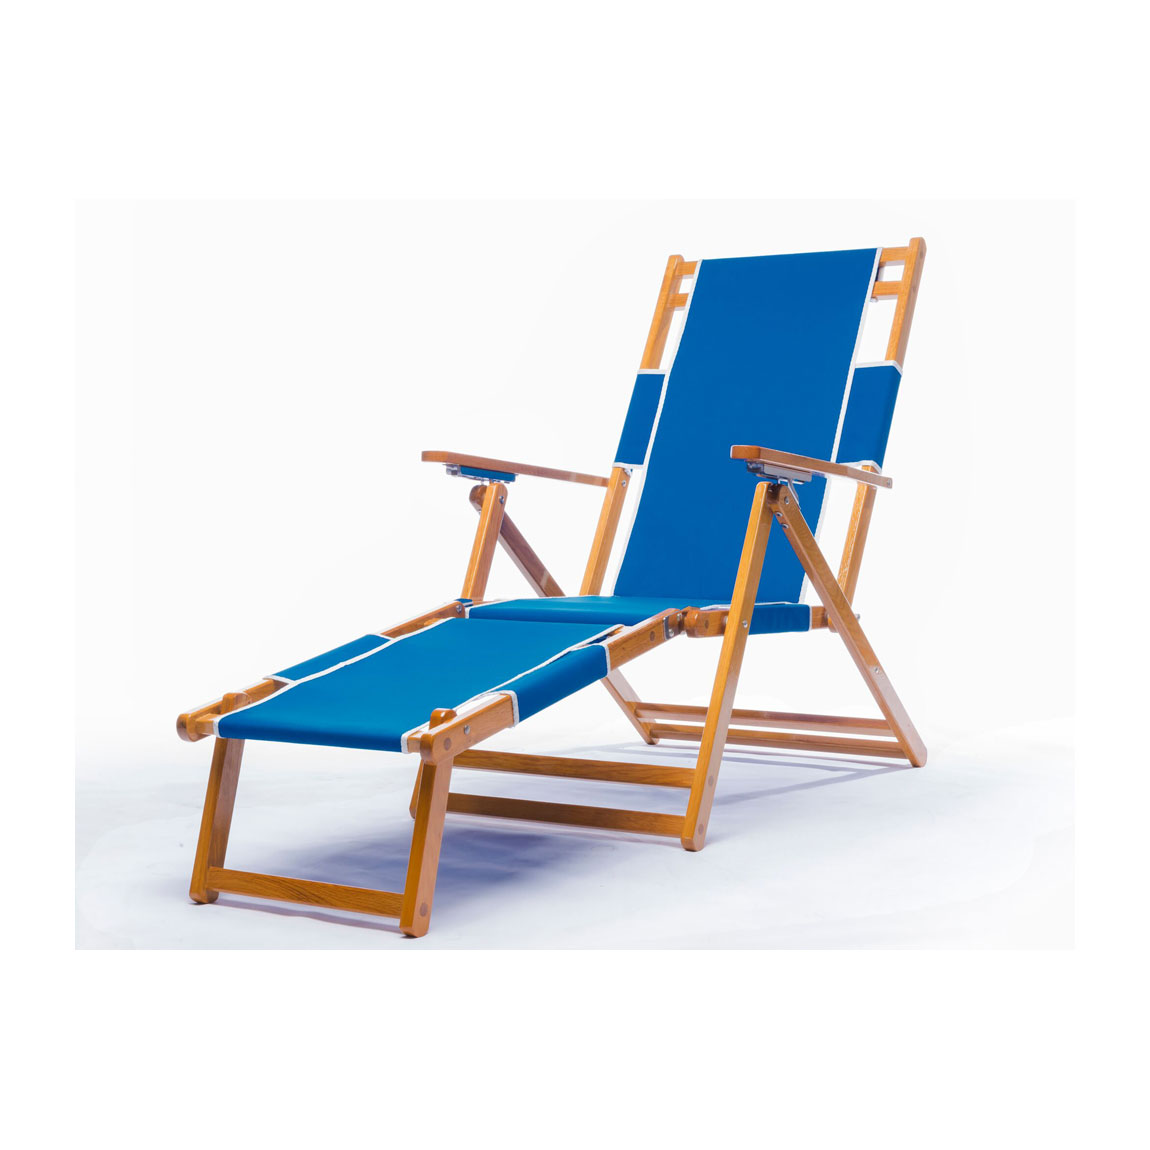 Heavy Duty mercial Grade Oak Wood Beach Chair Chaise Lounger